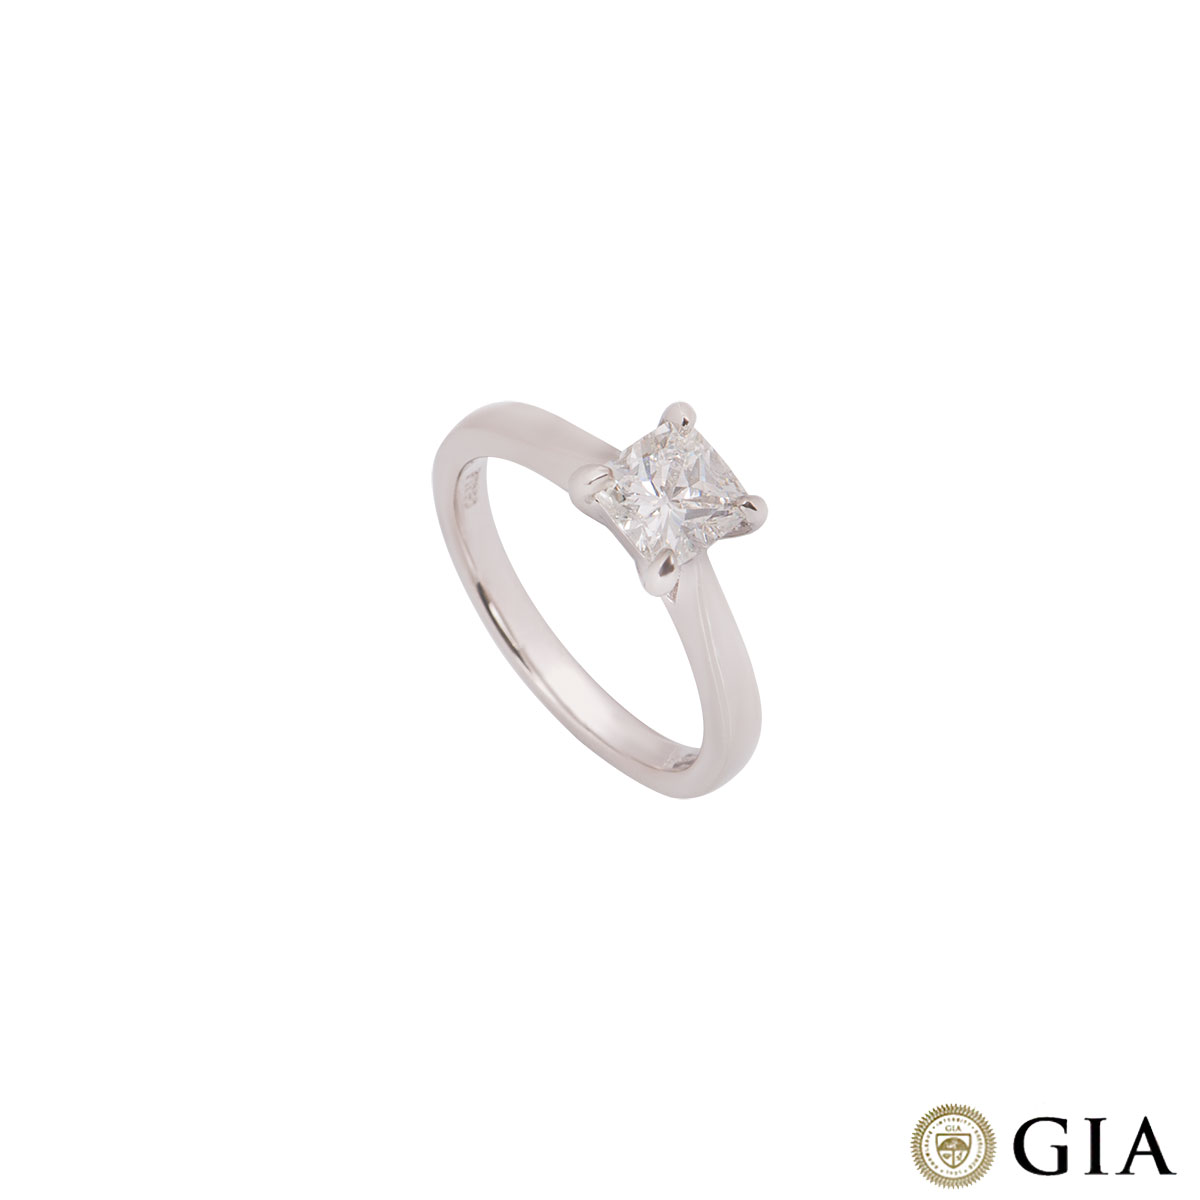 Platinum Cushion Cut Diamond Ring 0.91ct I/VS2